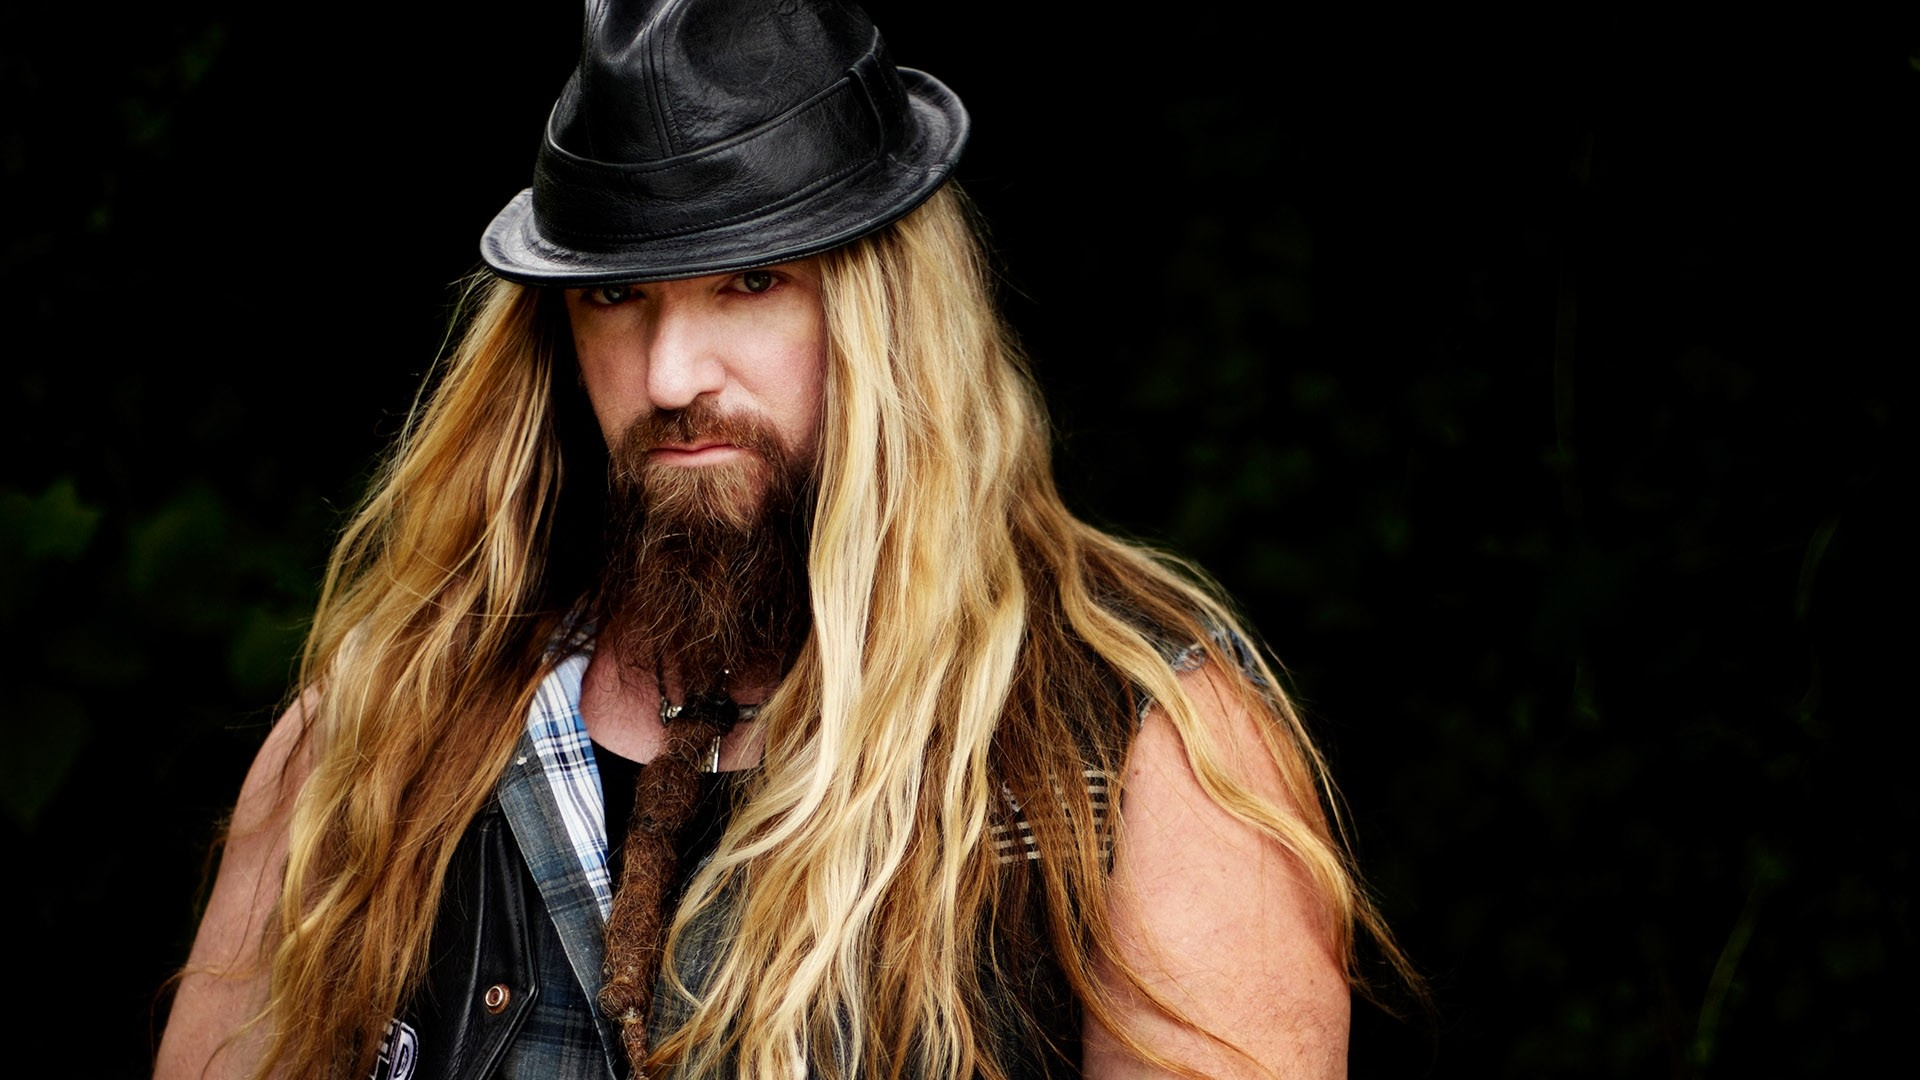 1920x1080  Wallpaper zakk wylde, hair, beard, hat, shoulders